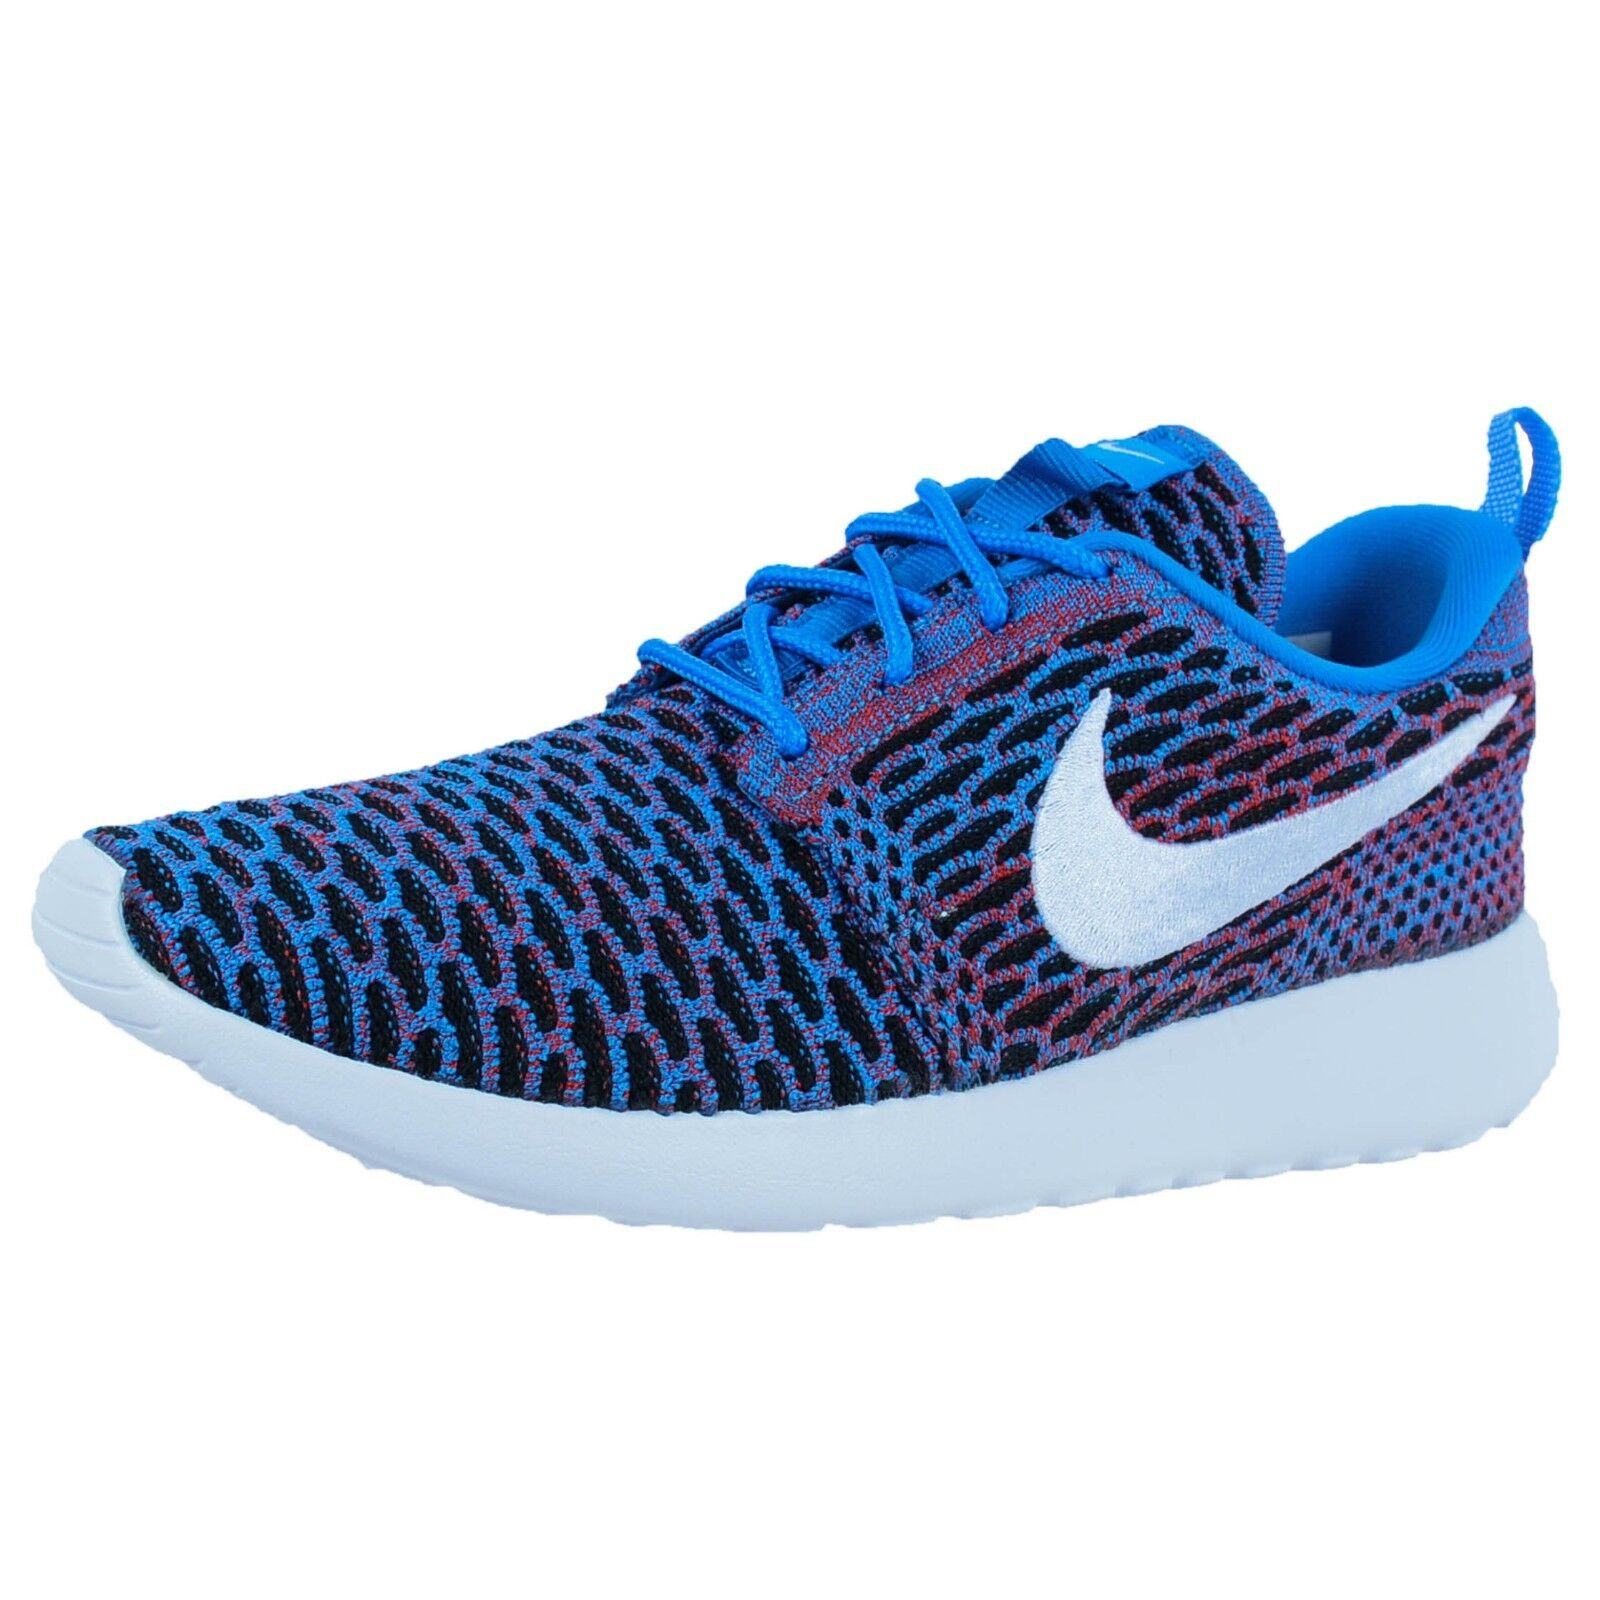 NIKE WOMENS ROSHE ONE FLYKNIT CASUAL SNEAKERS PHOTO blueE WHITE RED 704927 404